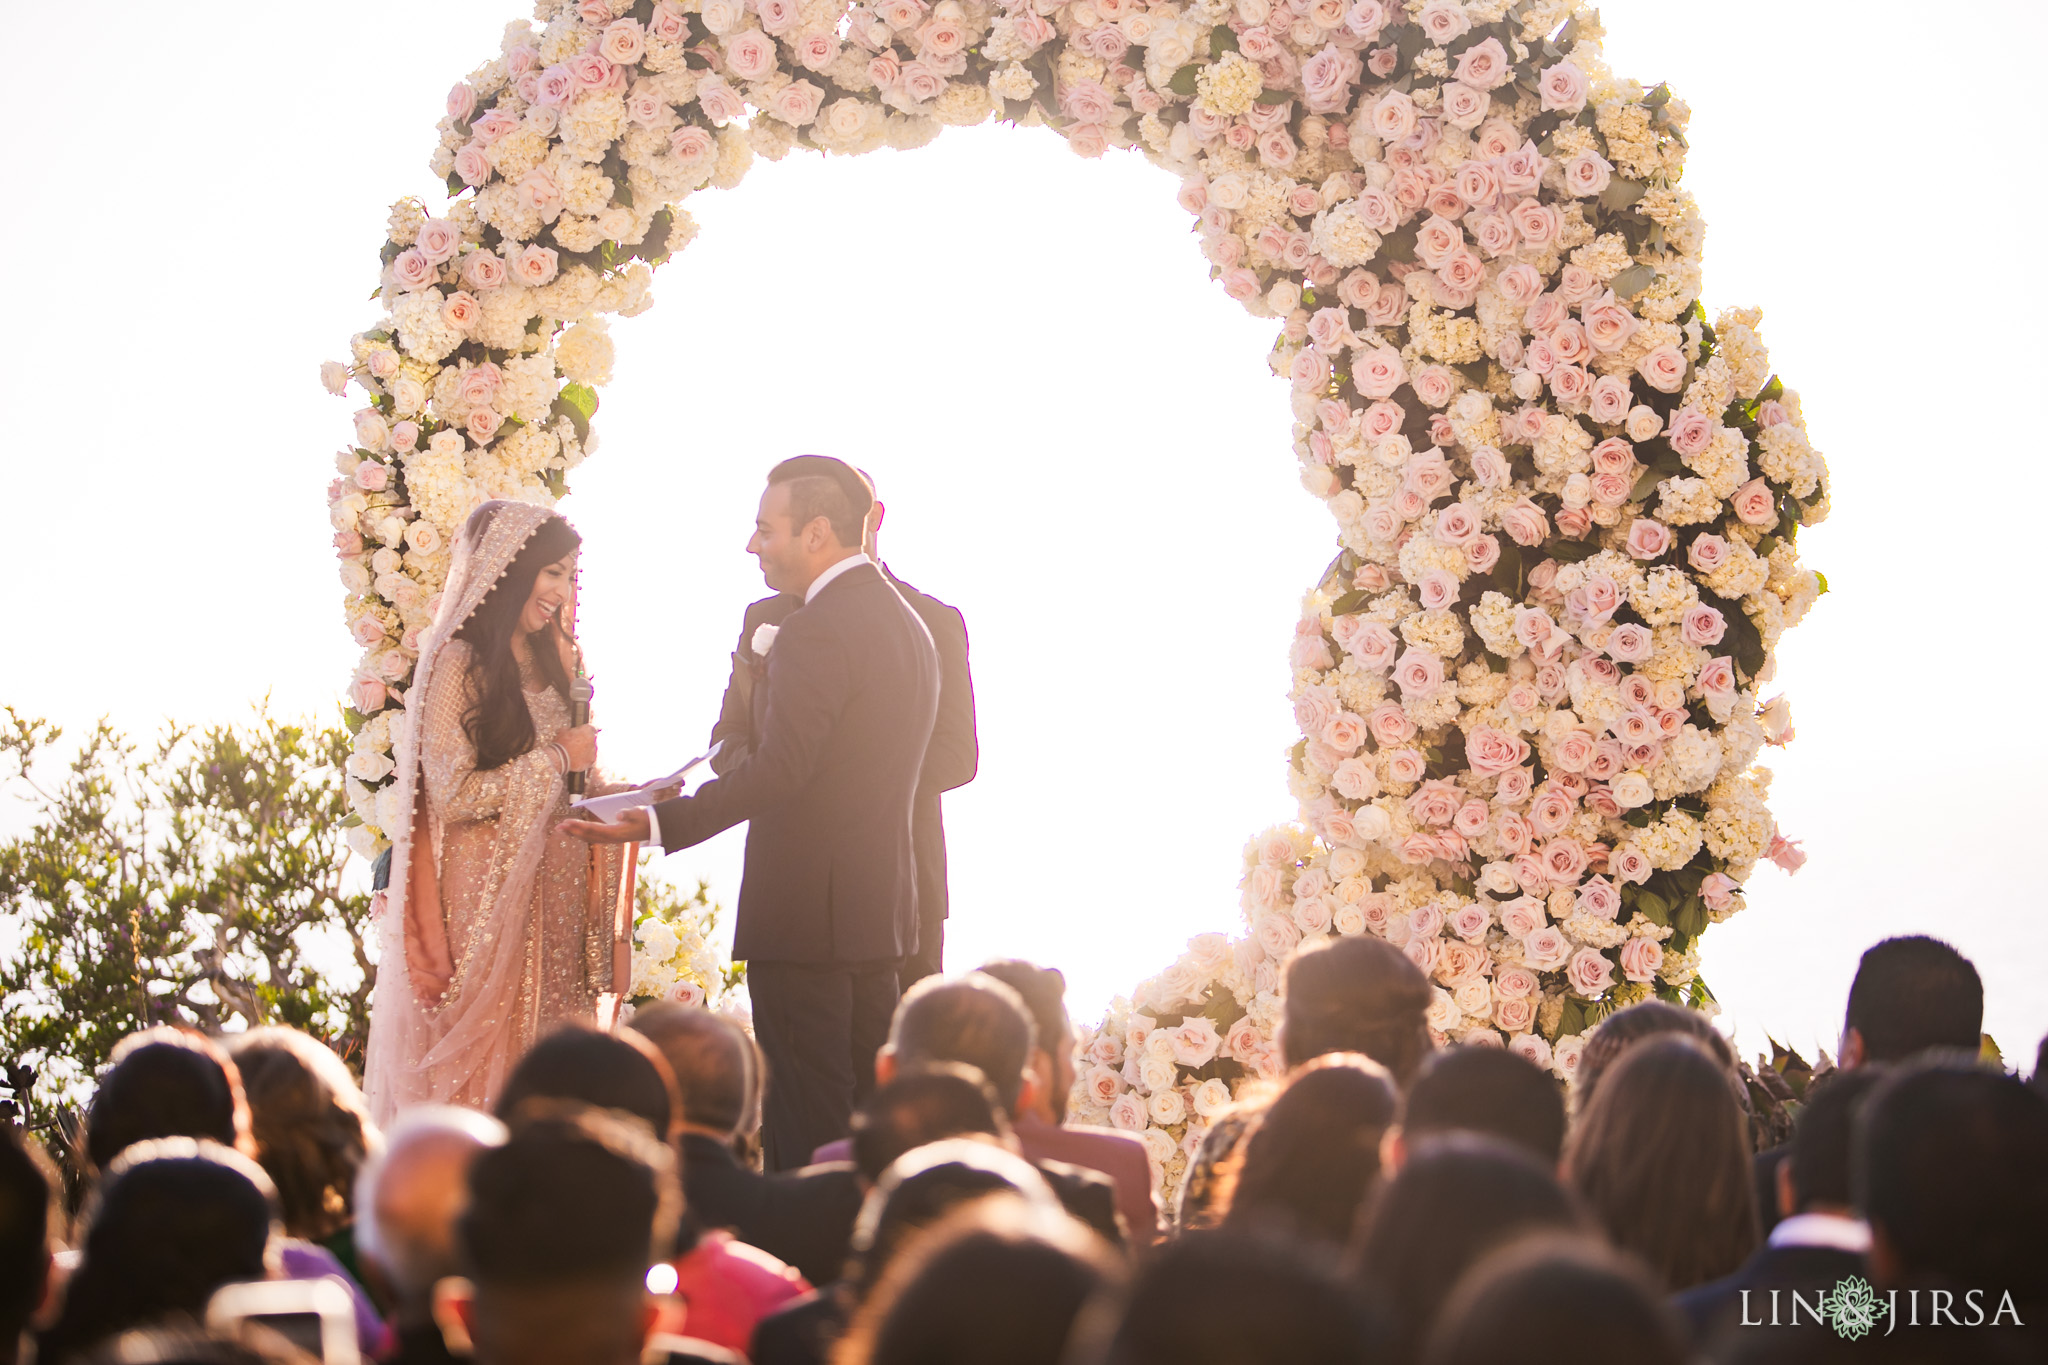 019 ritz carlton laguna niguel south asian wedding ceremony photography